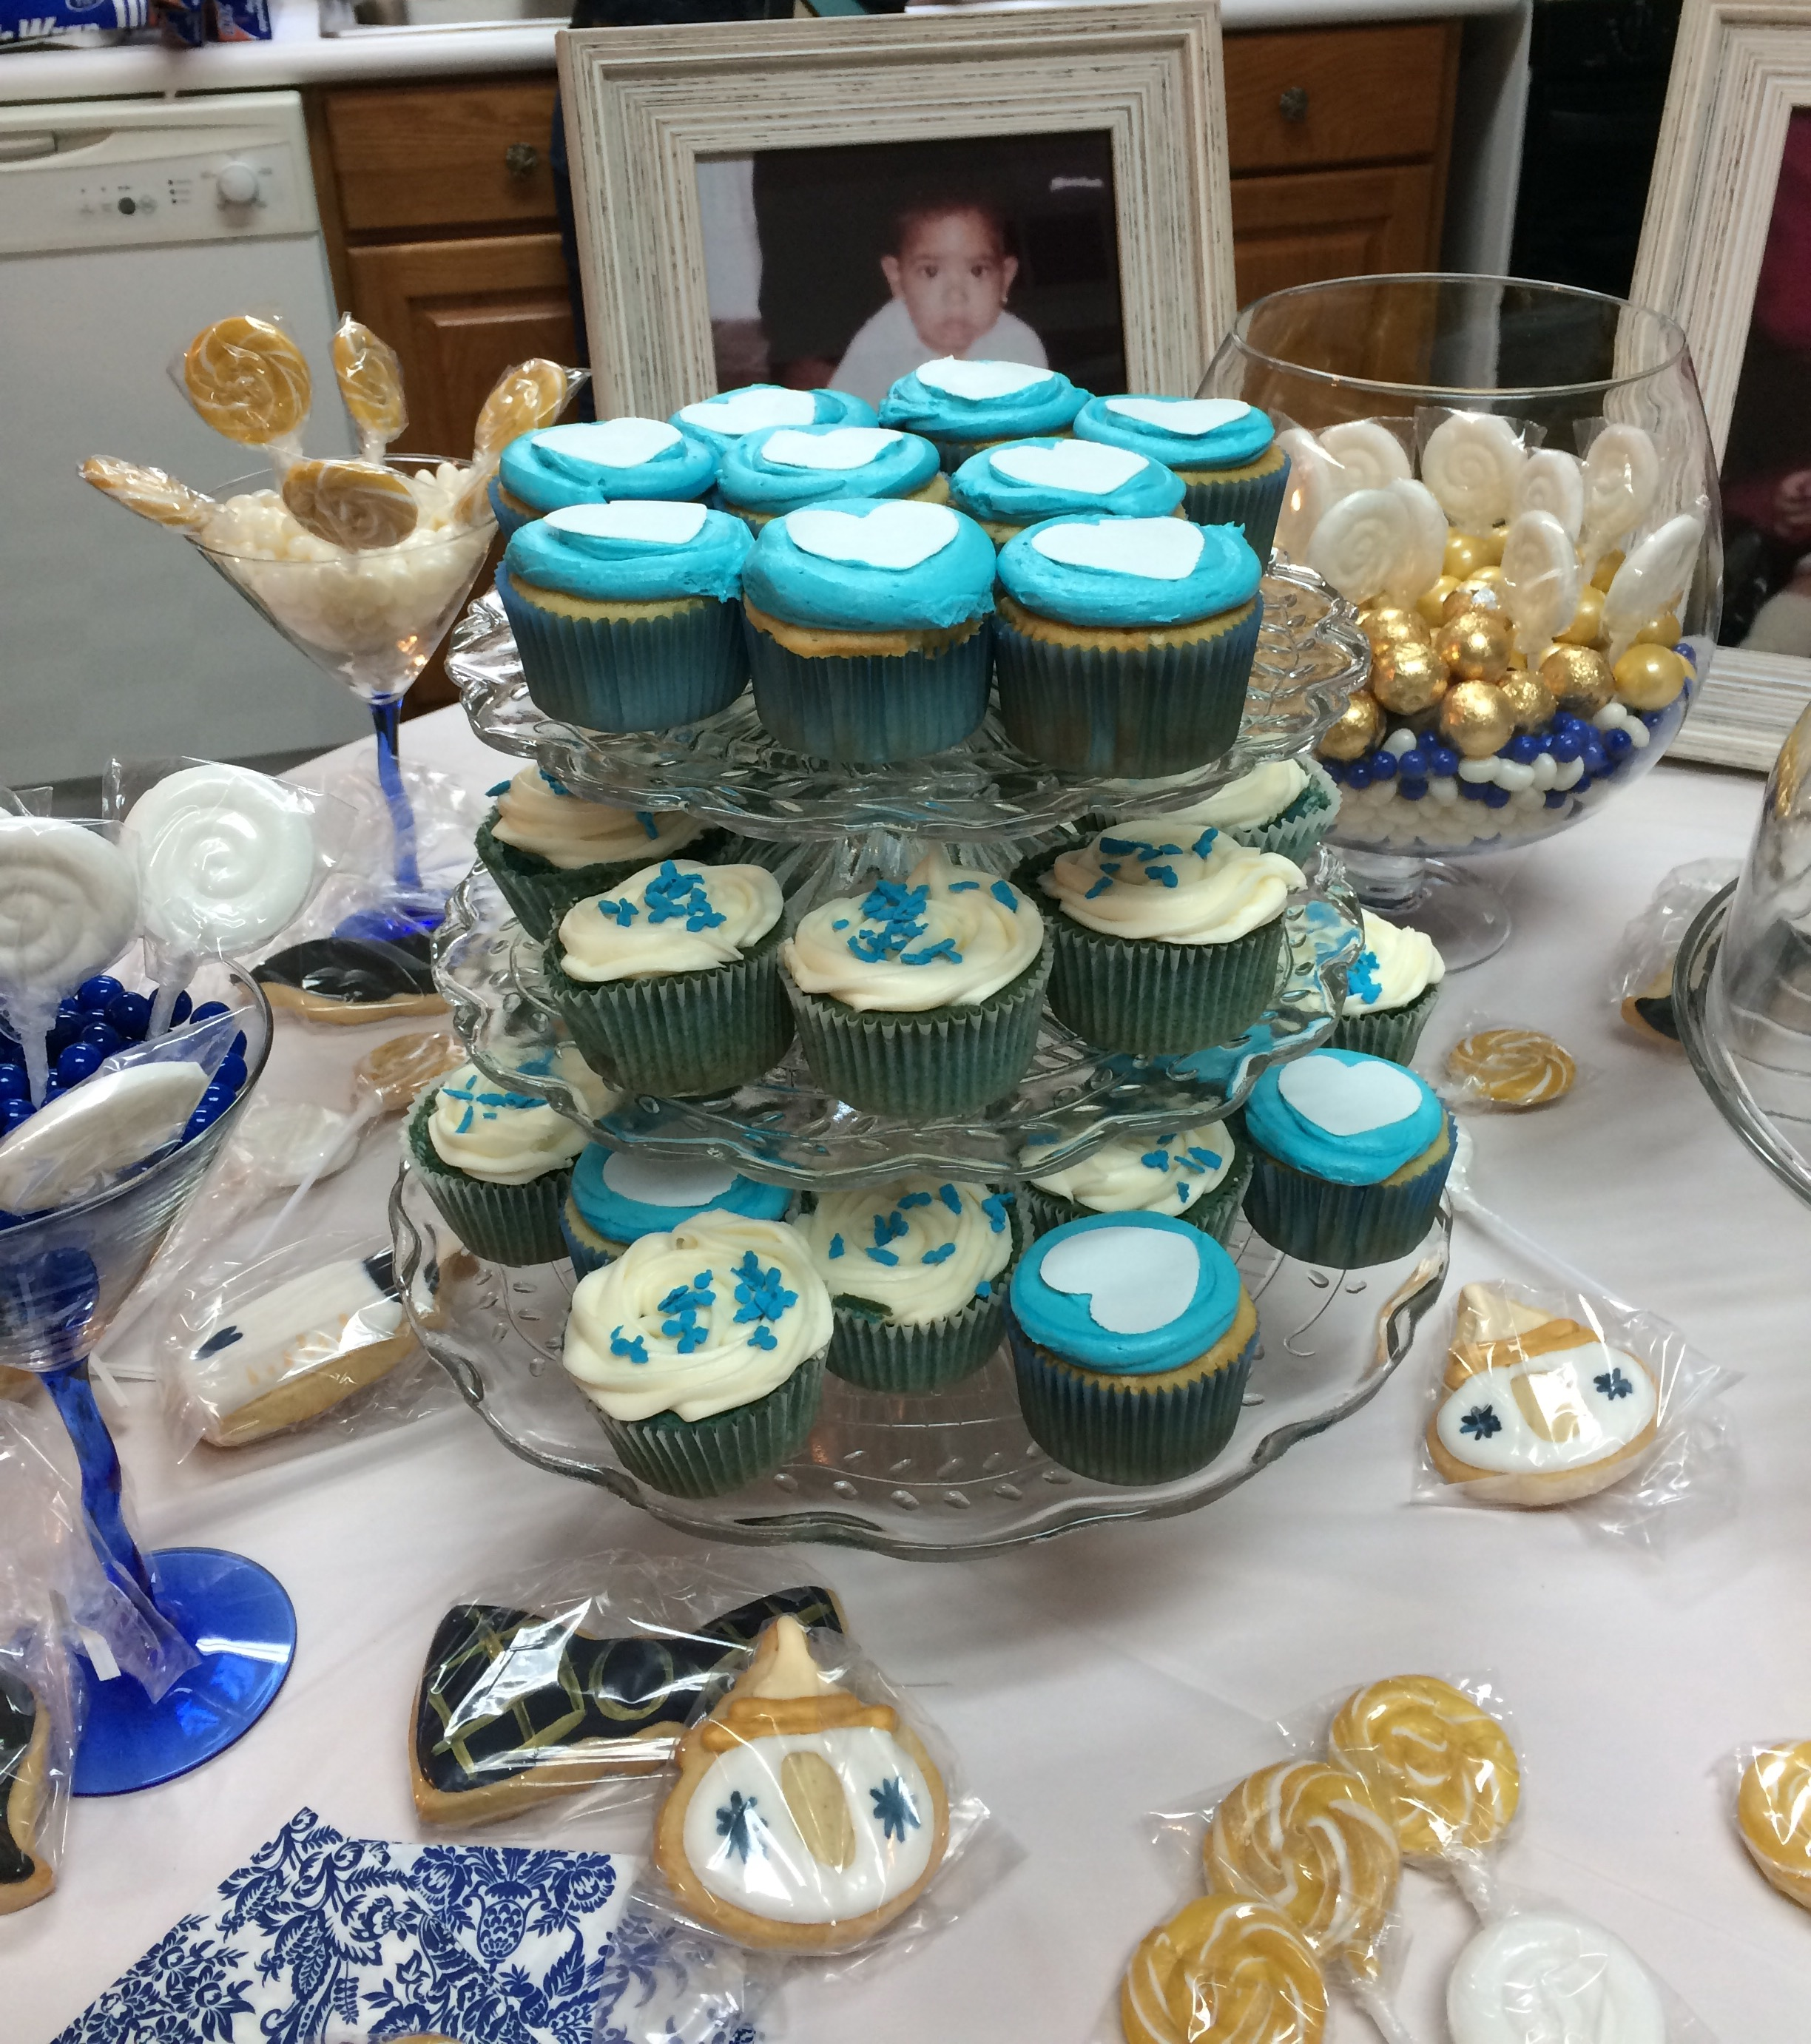 baby showers stick to tradition vs new millenium nolafitchick